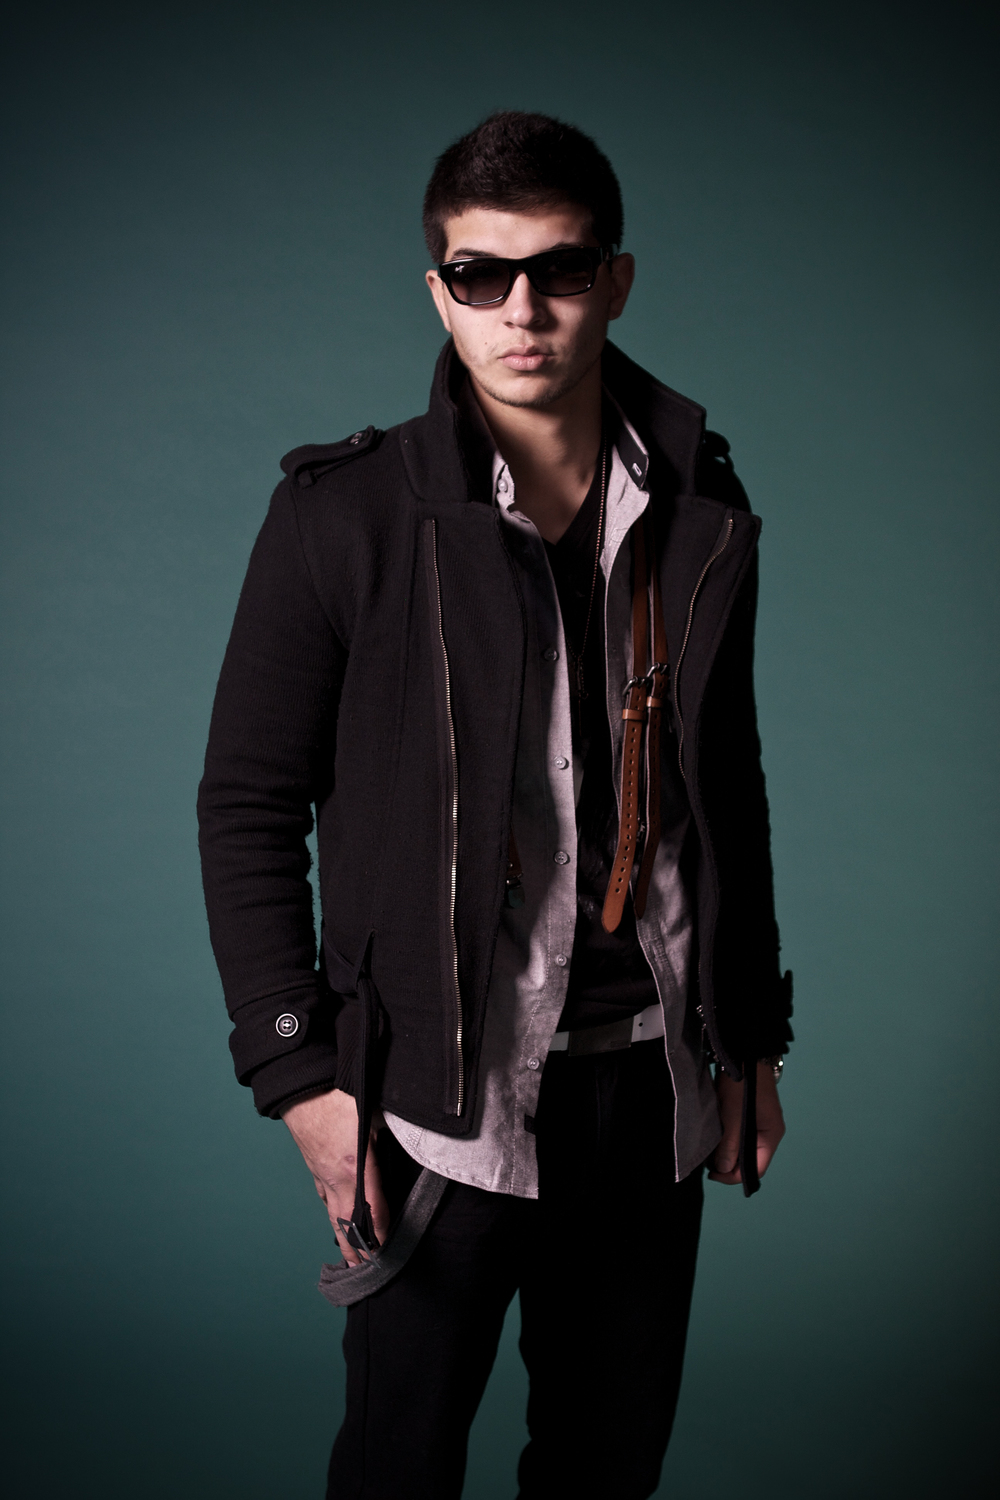 5STR_LOOKBOOK_Portrait2-2.jpg